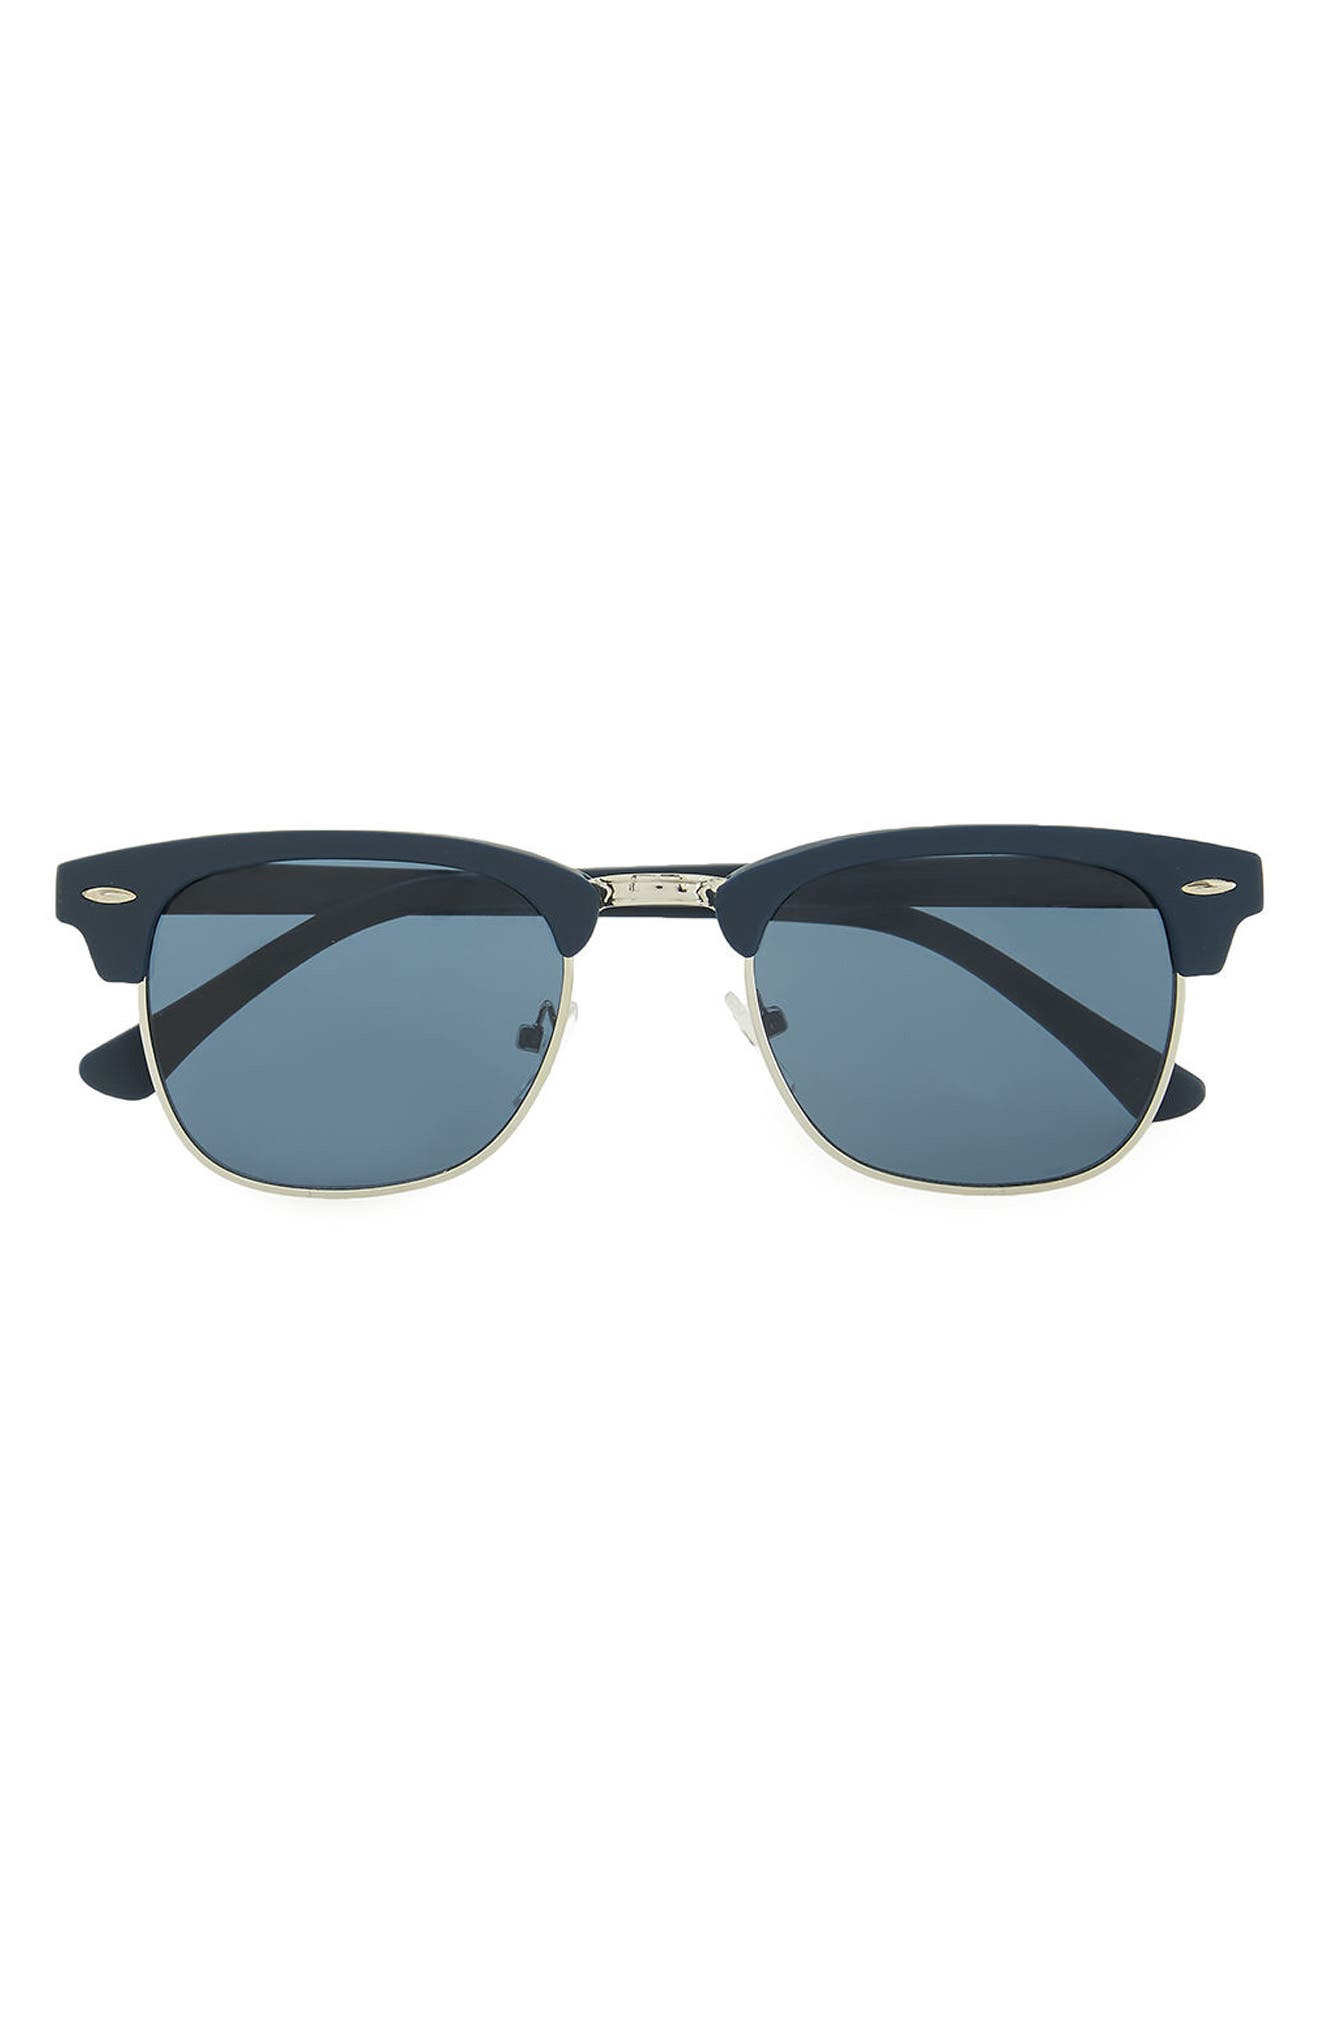 Topman 50mm Sunglasses